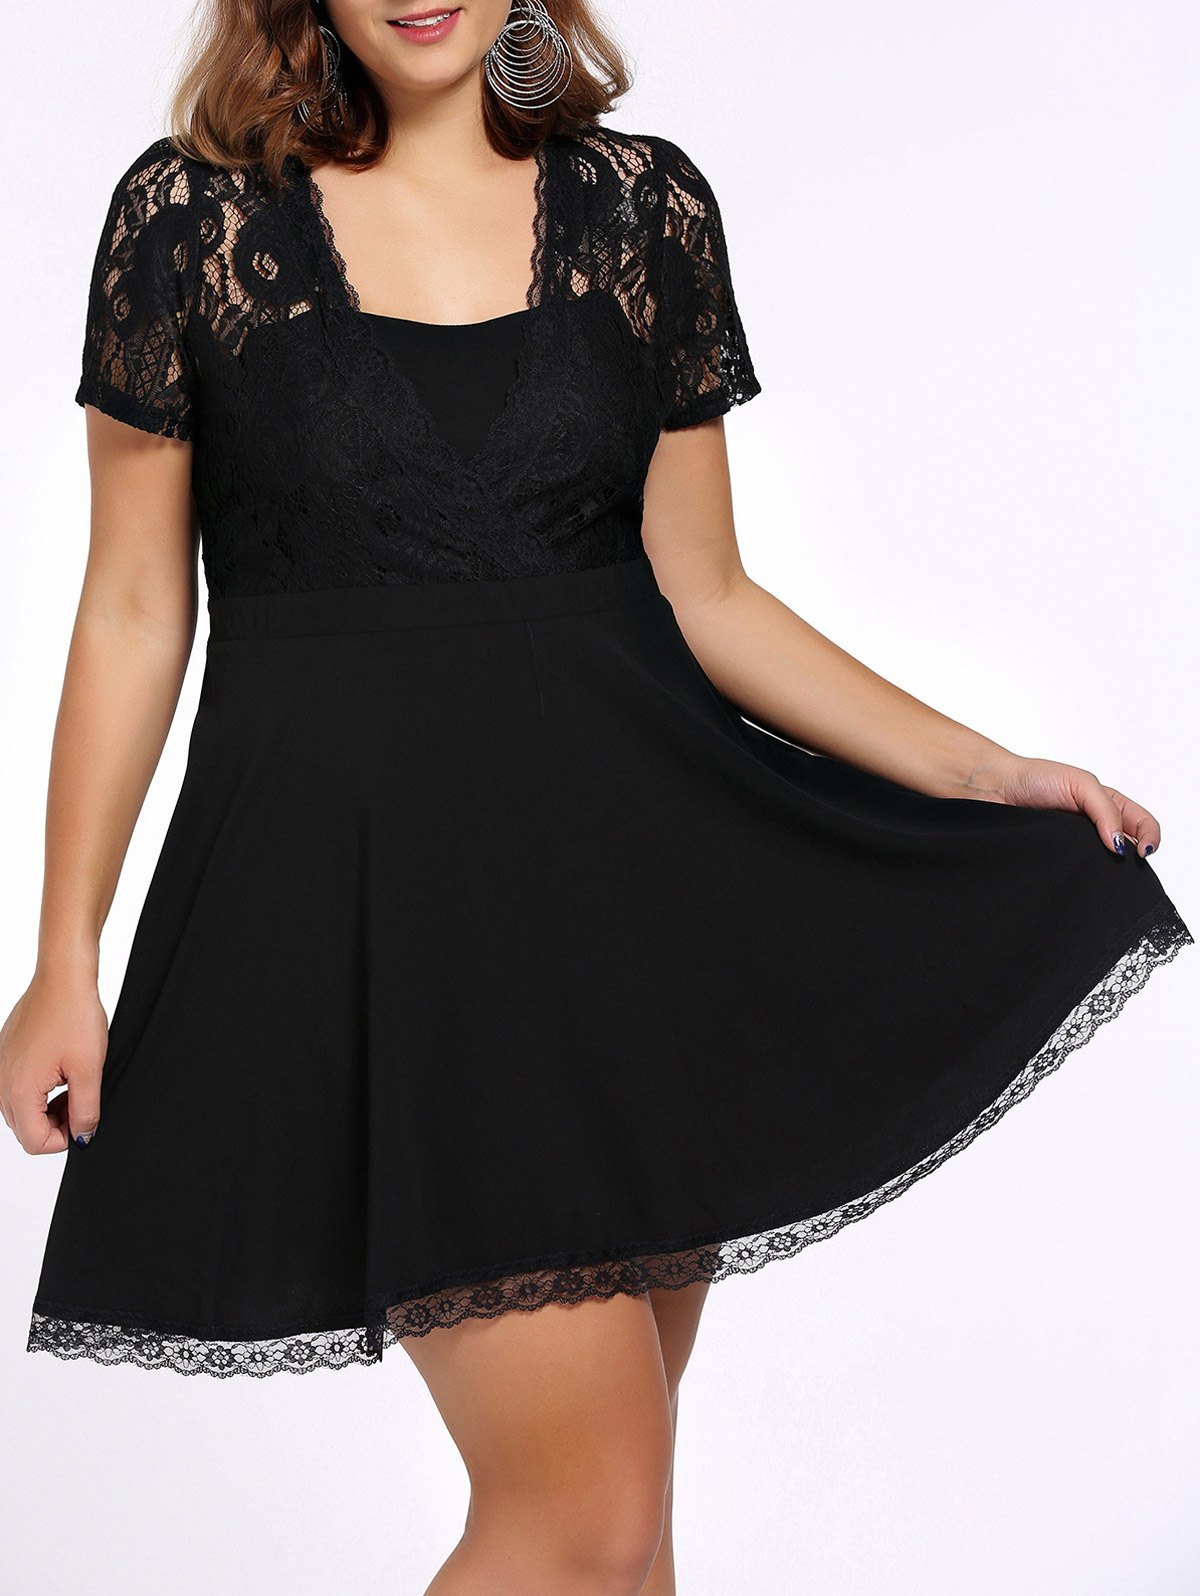 Chic Plus Size Square Neck Lace Design Black Women's Dress - BLACK 2XL